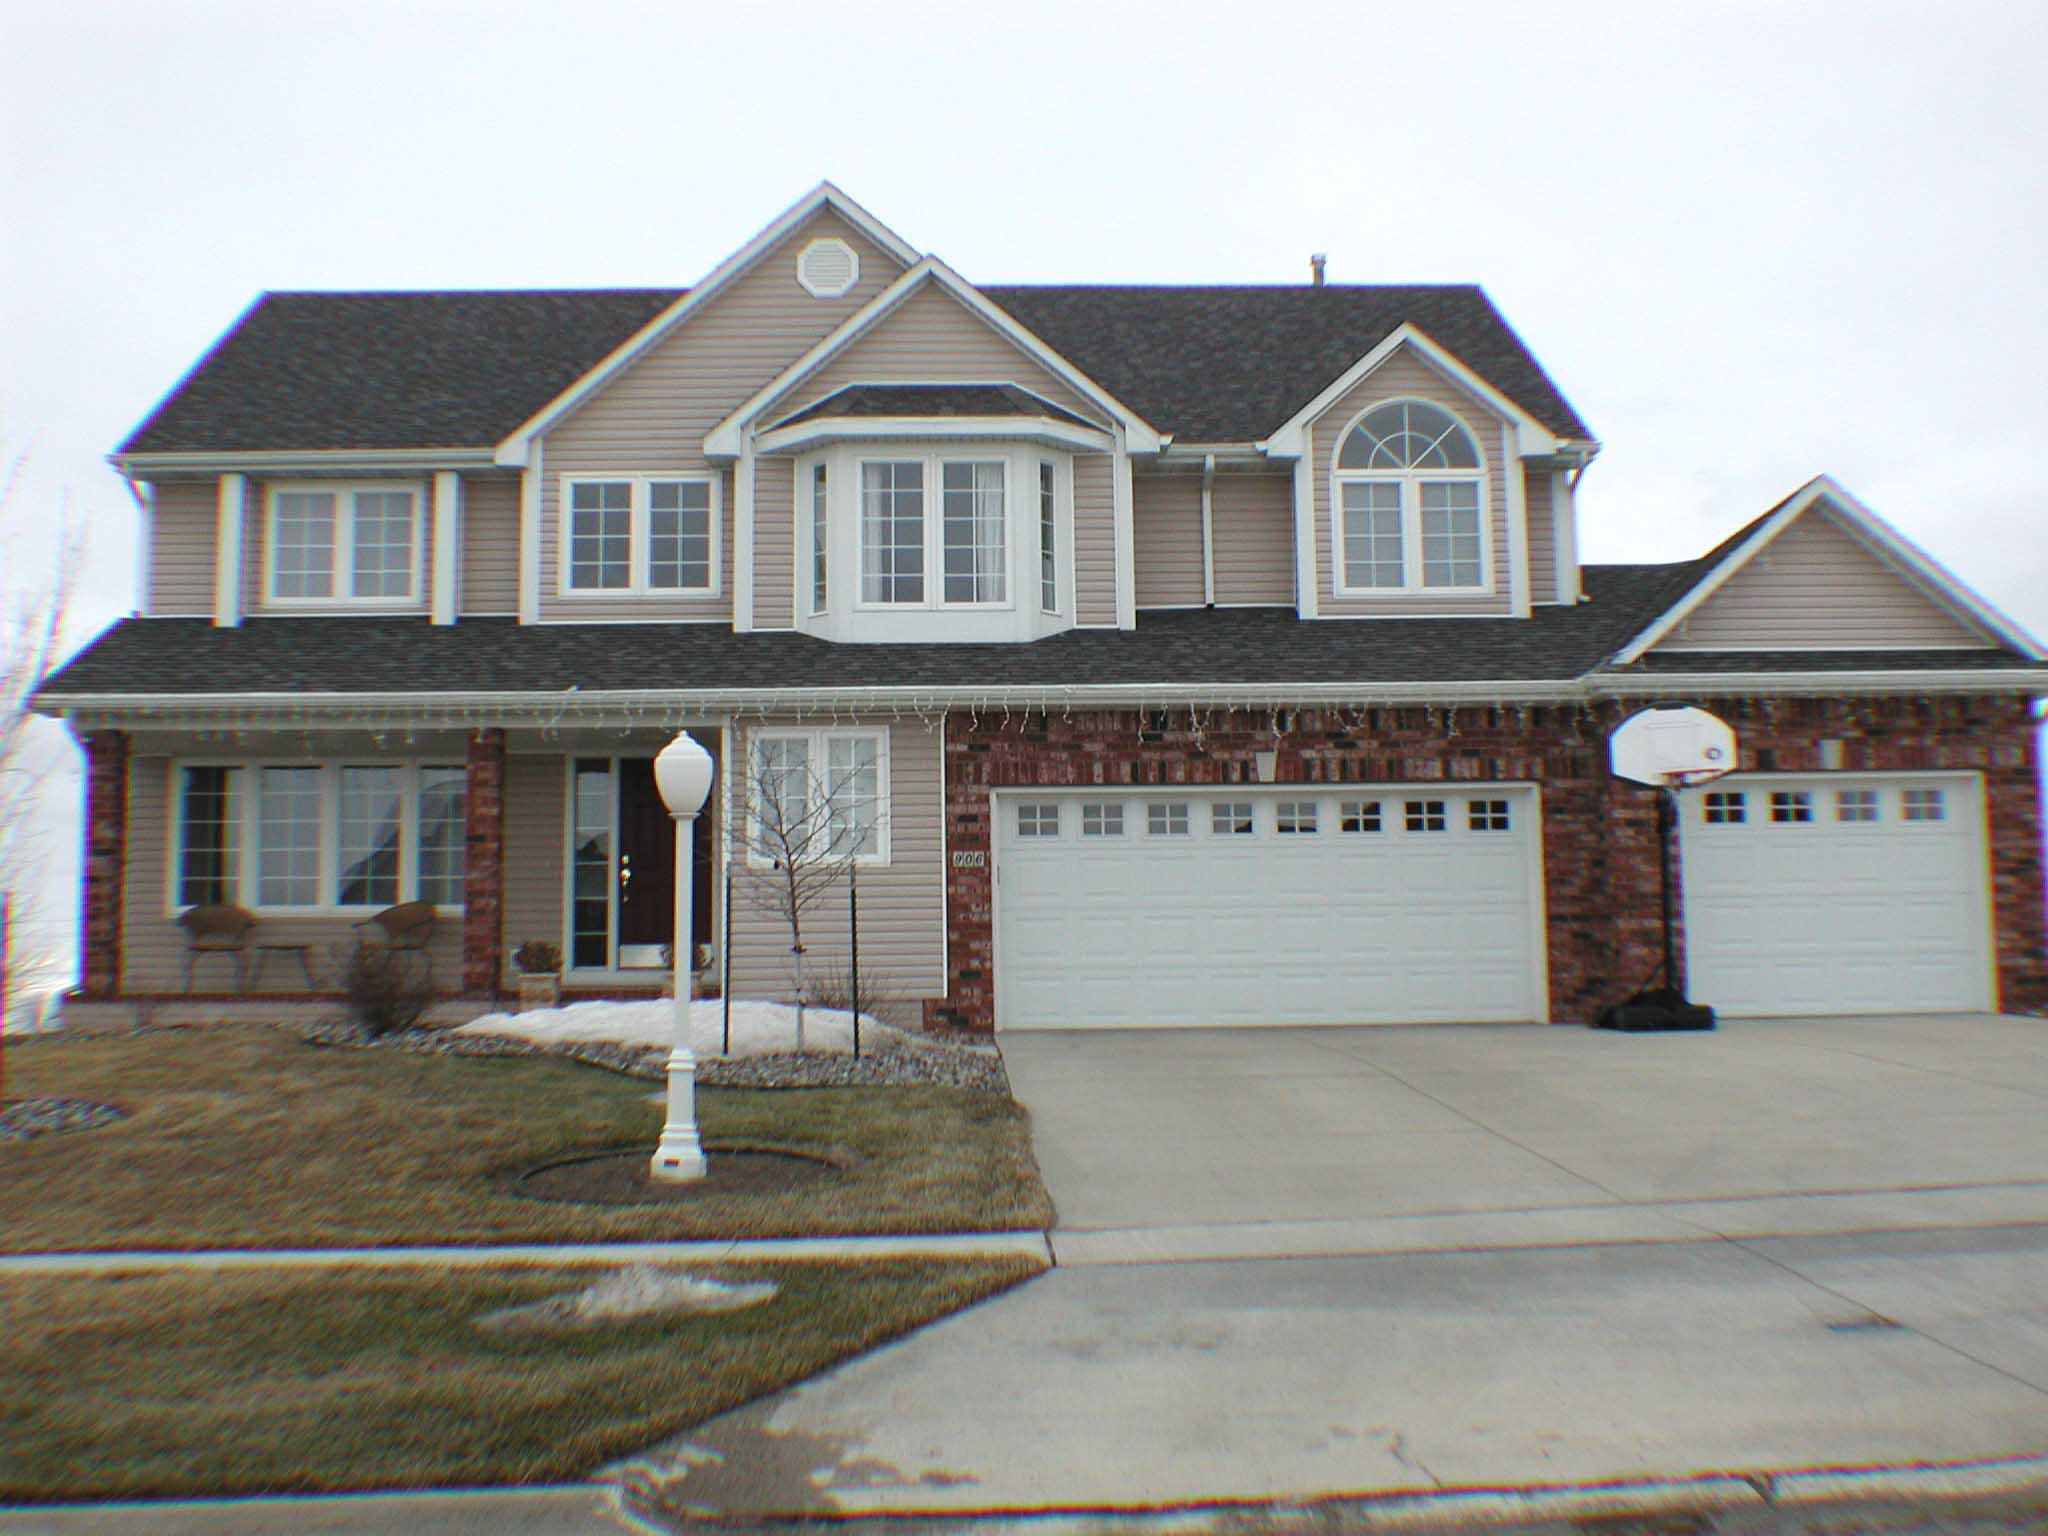 Ankeny, Iowa IA For Sale By Owner, Iowa FSBO Home in Ankeny IA, NE 34TH ST ForSaleByOwner Home